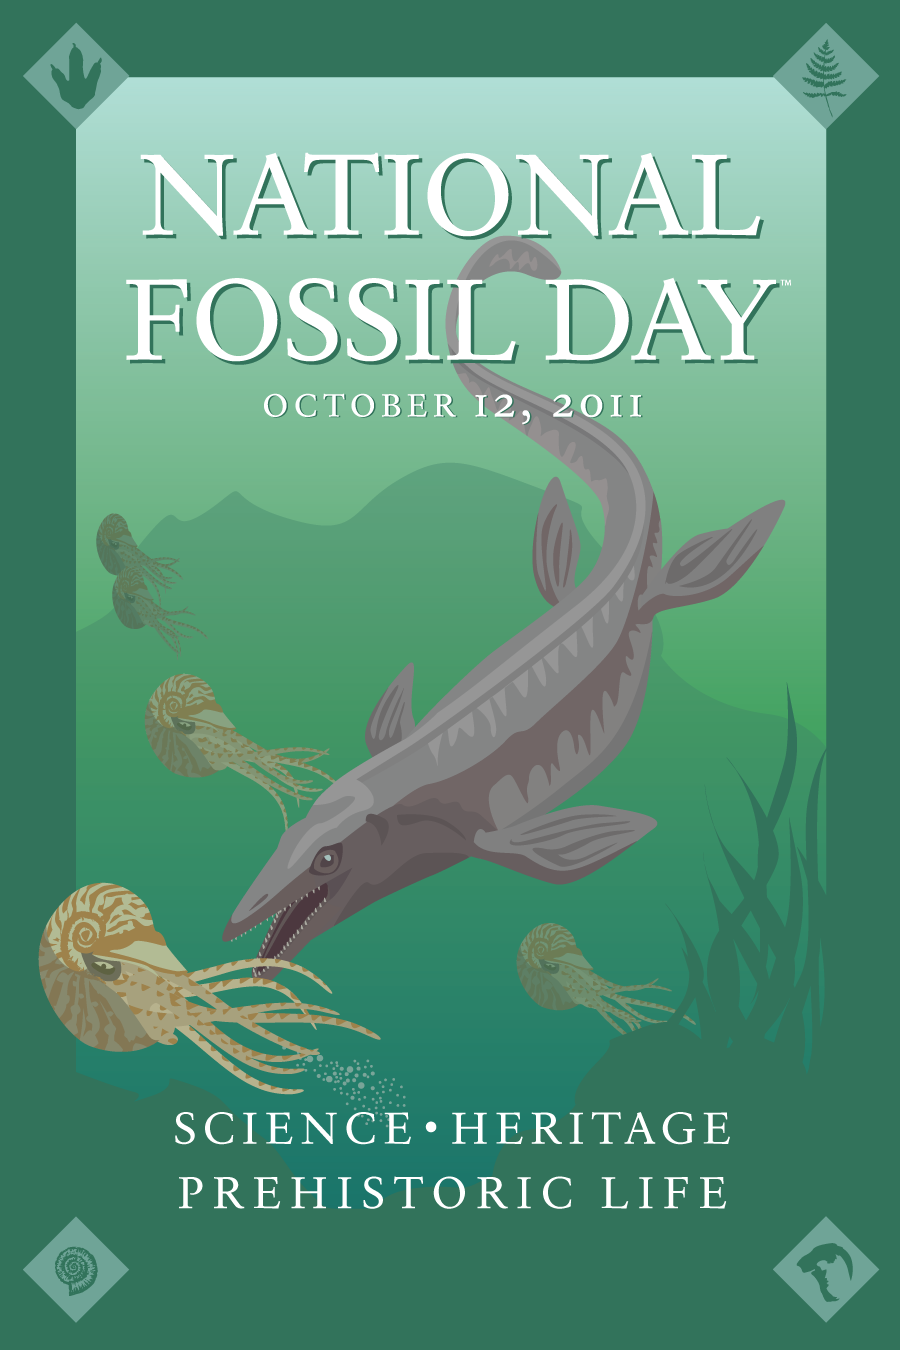 2011 NFD artwork poster with mosasaur